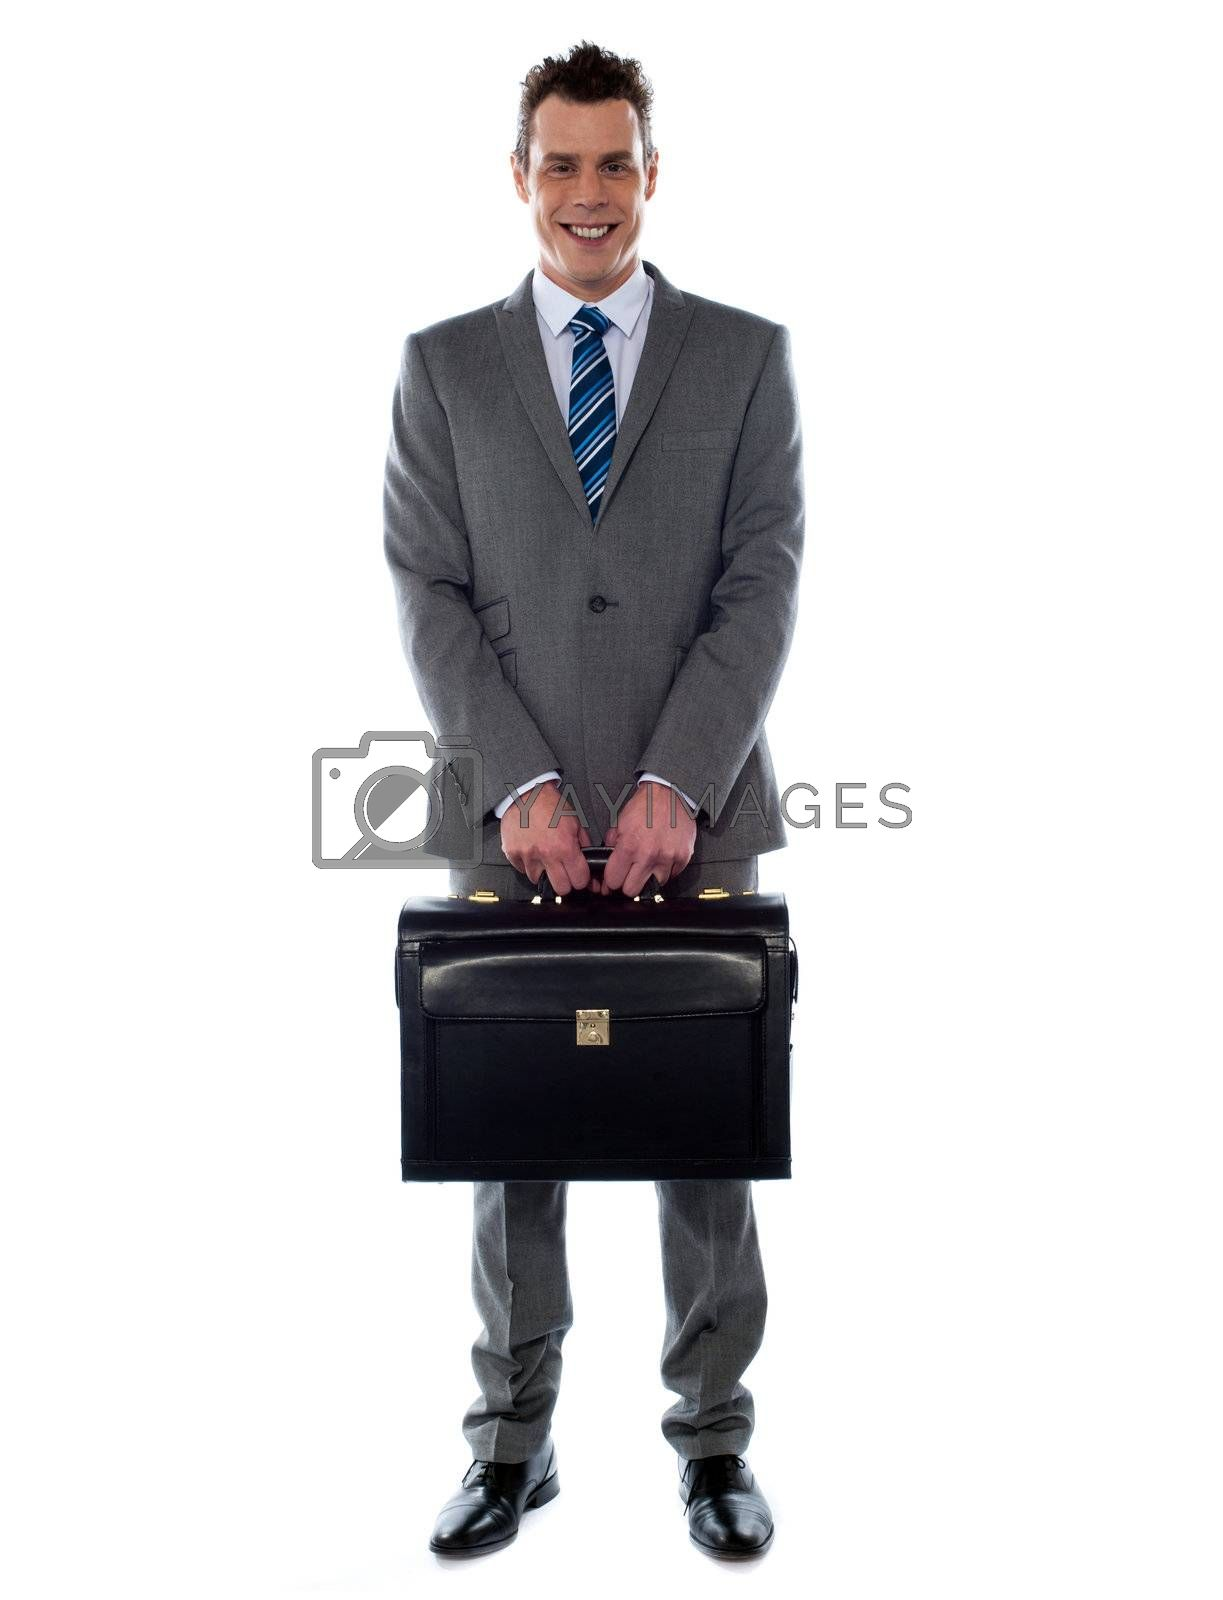 Comany's CEO holding his handbag in front of camera